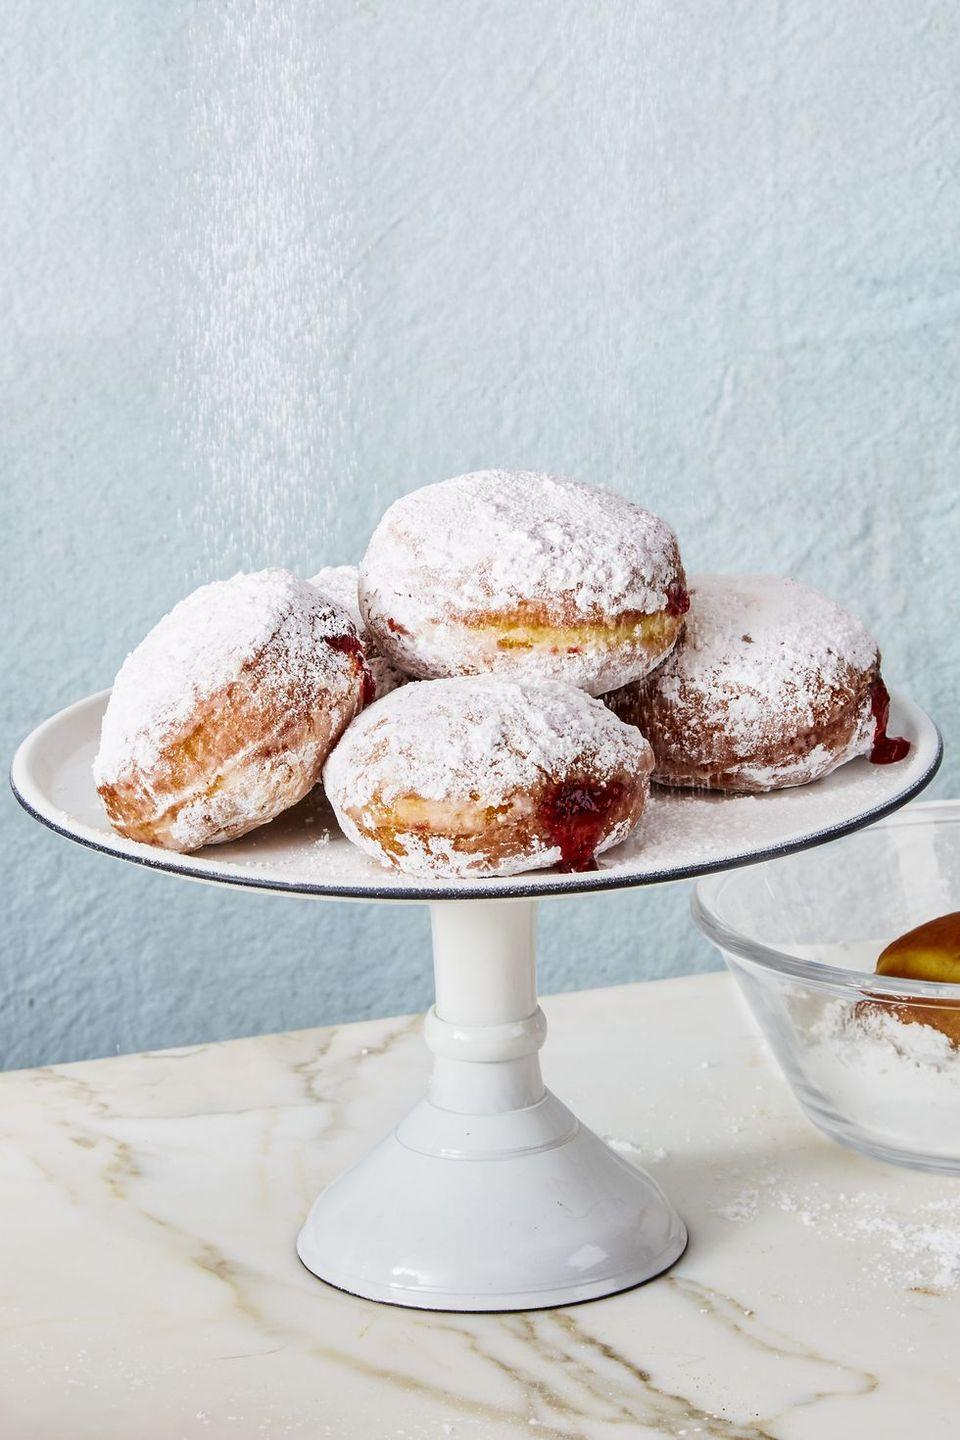 """<p>Packed with sugar and berry jam, these donuts are best served hot.</p><p><em><a href=""""https://www.goodhousekeeping.com/food-recipes/a48180/classic-jelly-donuts-recipe/"""" rel=""""nofollow noopener"""" target=""""_blank"""" data-ylk=""""slk:Get the recipe for Classic Jelly Donuts »"""" class=""""link rapid-noclick-resp"""">Get the recipe for Classic Jelly Donuts »</a></em></p>"""